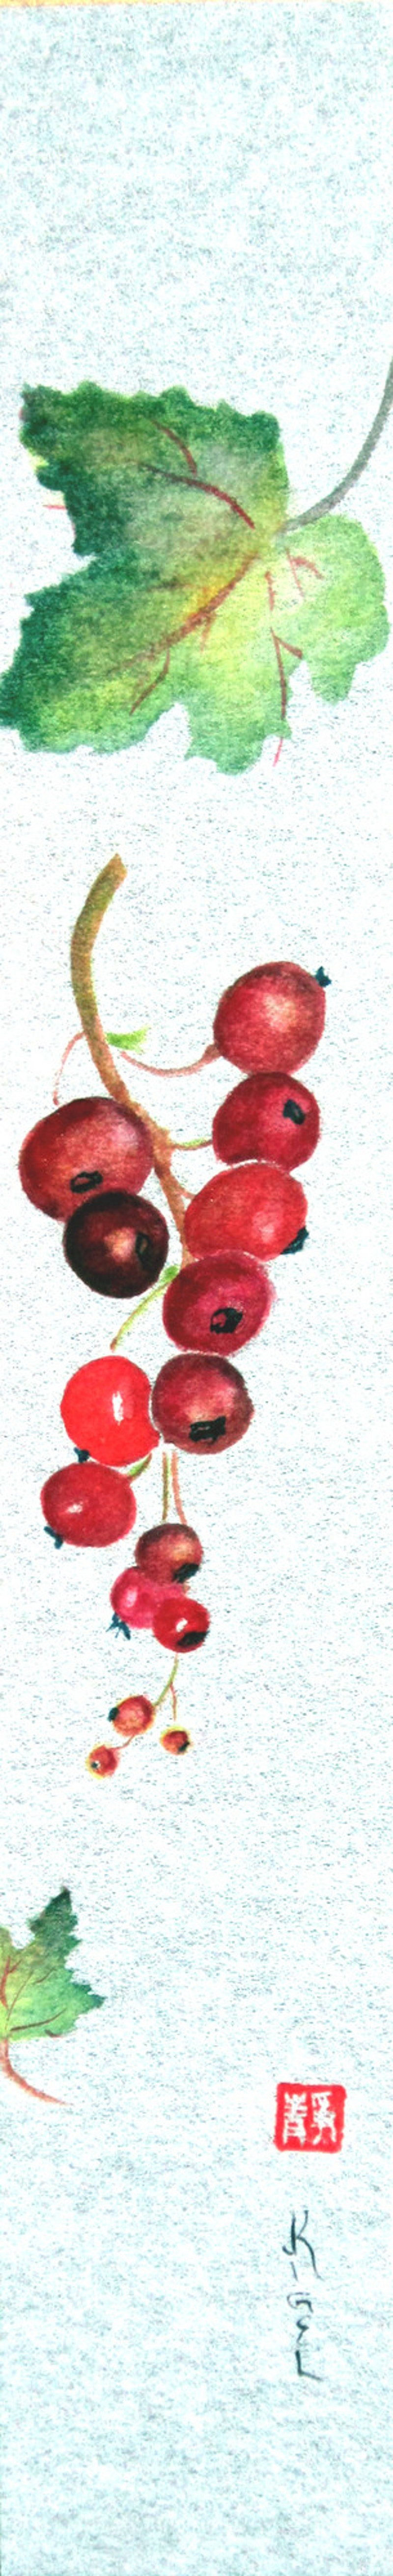 Red Currants - Hunter Gallery of Fine Art, Grafton, VT